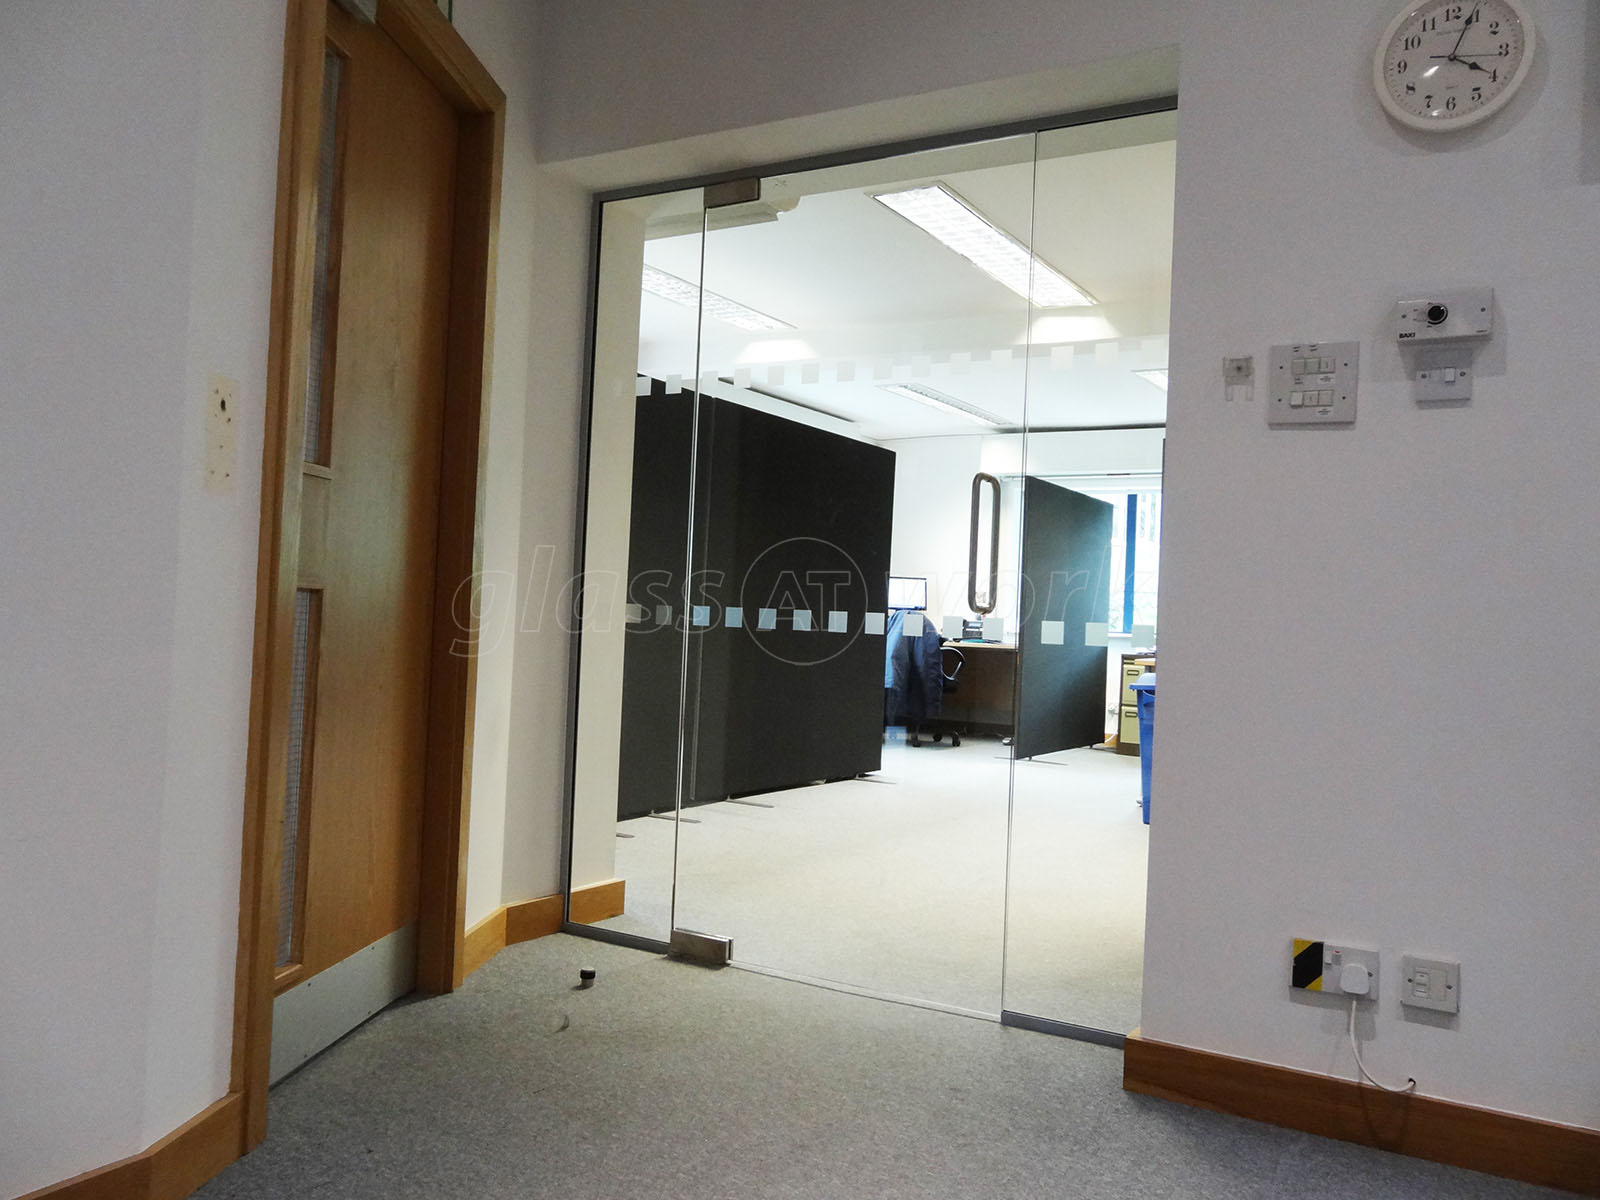 Glass partitioning at ti security leeds west yorkshire glass ti security leeds west yorkshire glass partition with glass door eventelaan Gallery